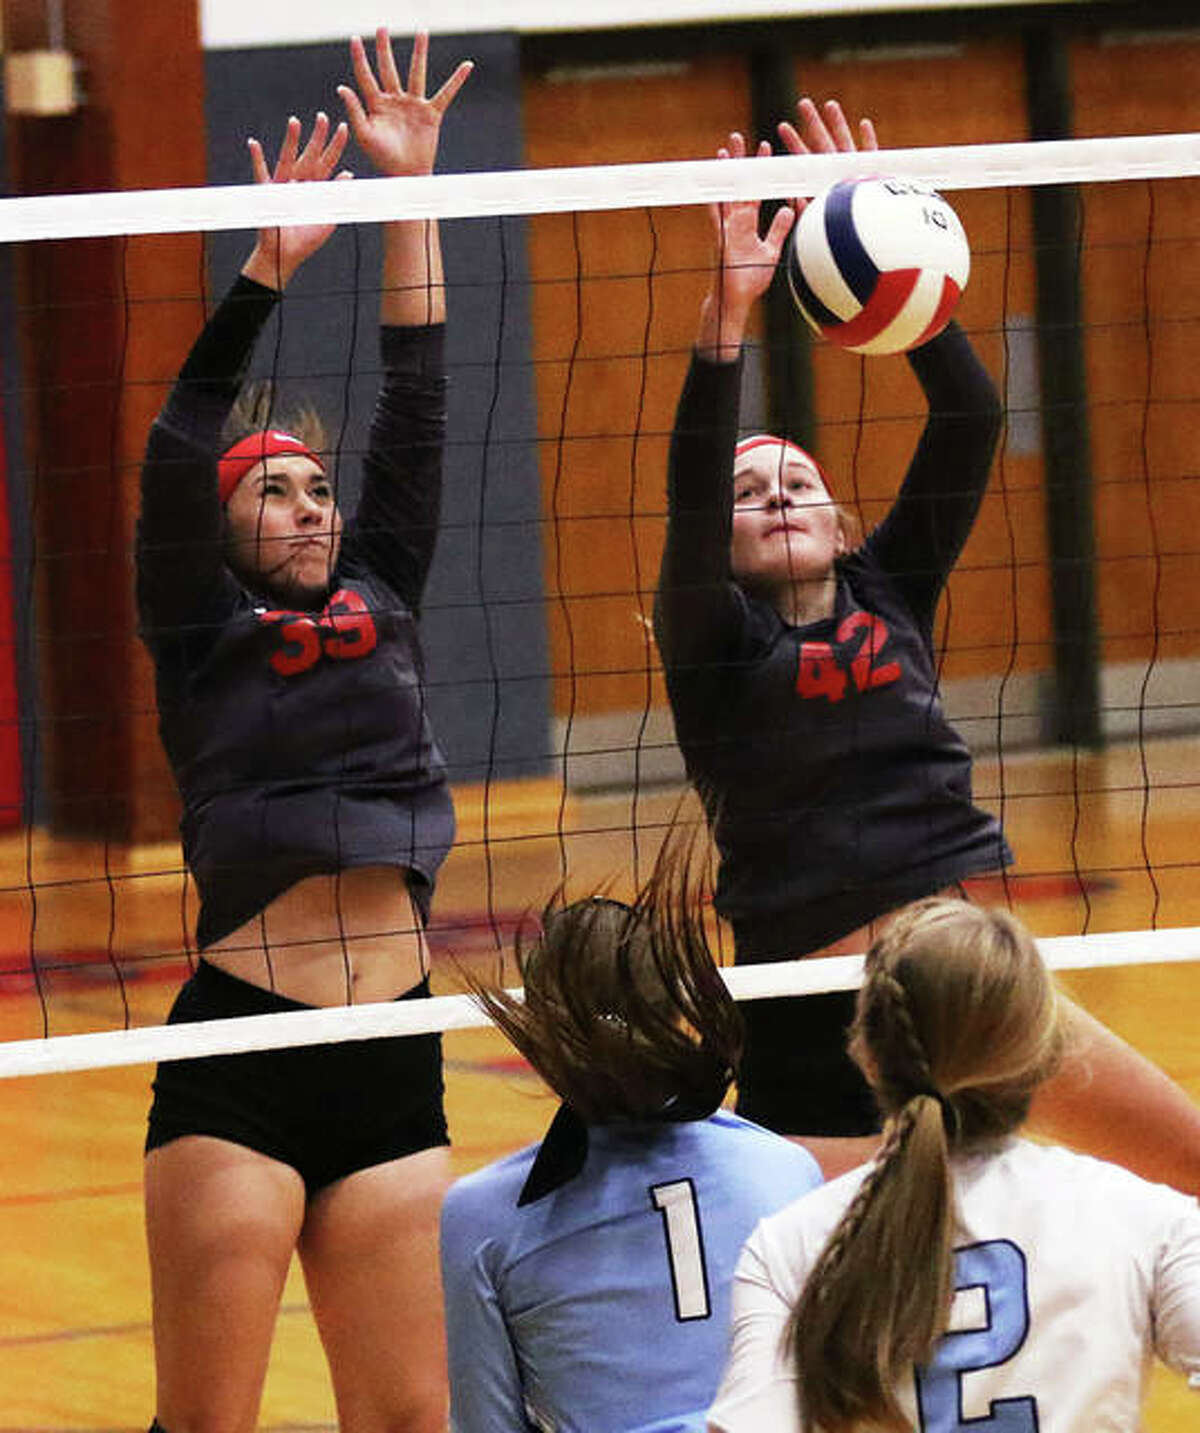 Staunton's Gabbie Reising (left) and Kennedy Legendre (42) go up for a double block to score against North Mac in a Macoupin County Tournament match last season in Carlinville. Both Reising and Legendre return from a 31-5 squad that will wait for spring for its next season.